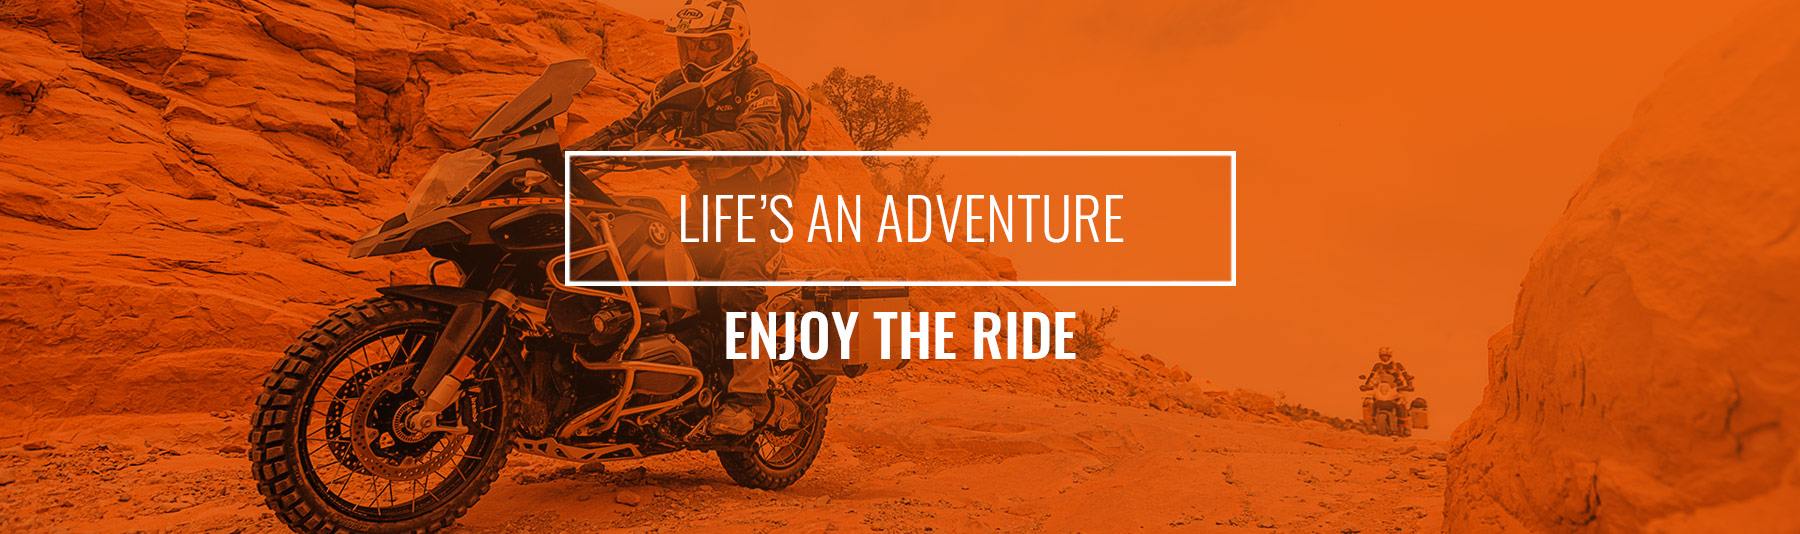 Twisted Trails - Products-Aftermarket-Parts-Lifes-An-Adventure-Enjoy-The-Ride